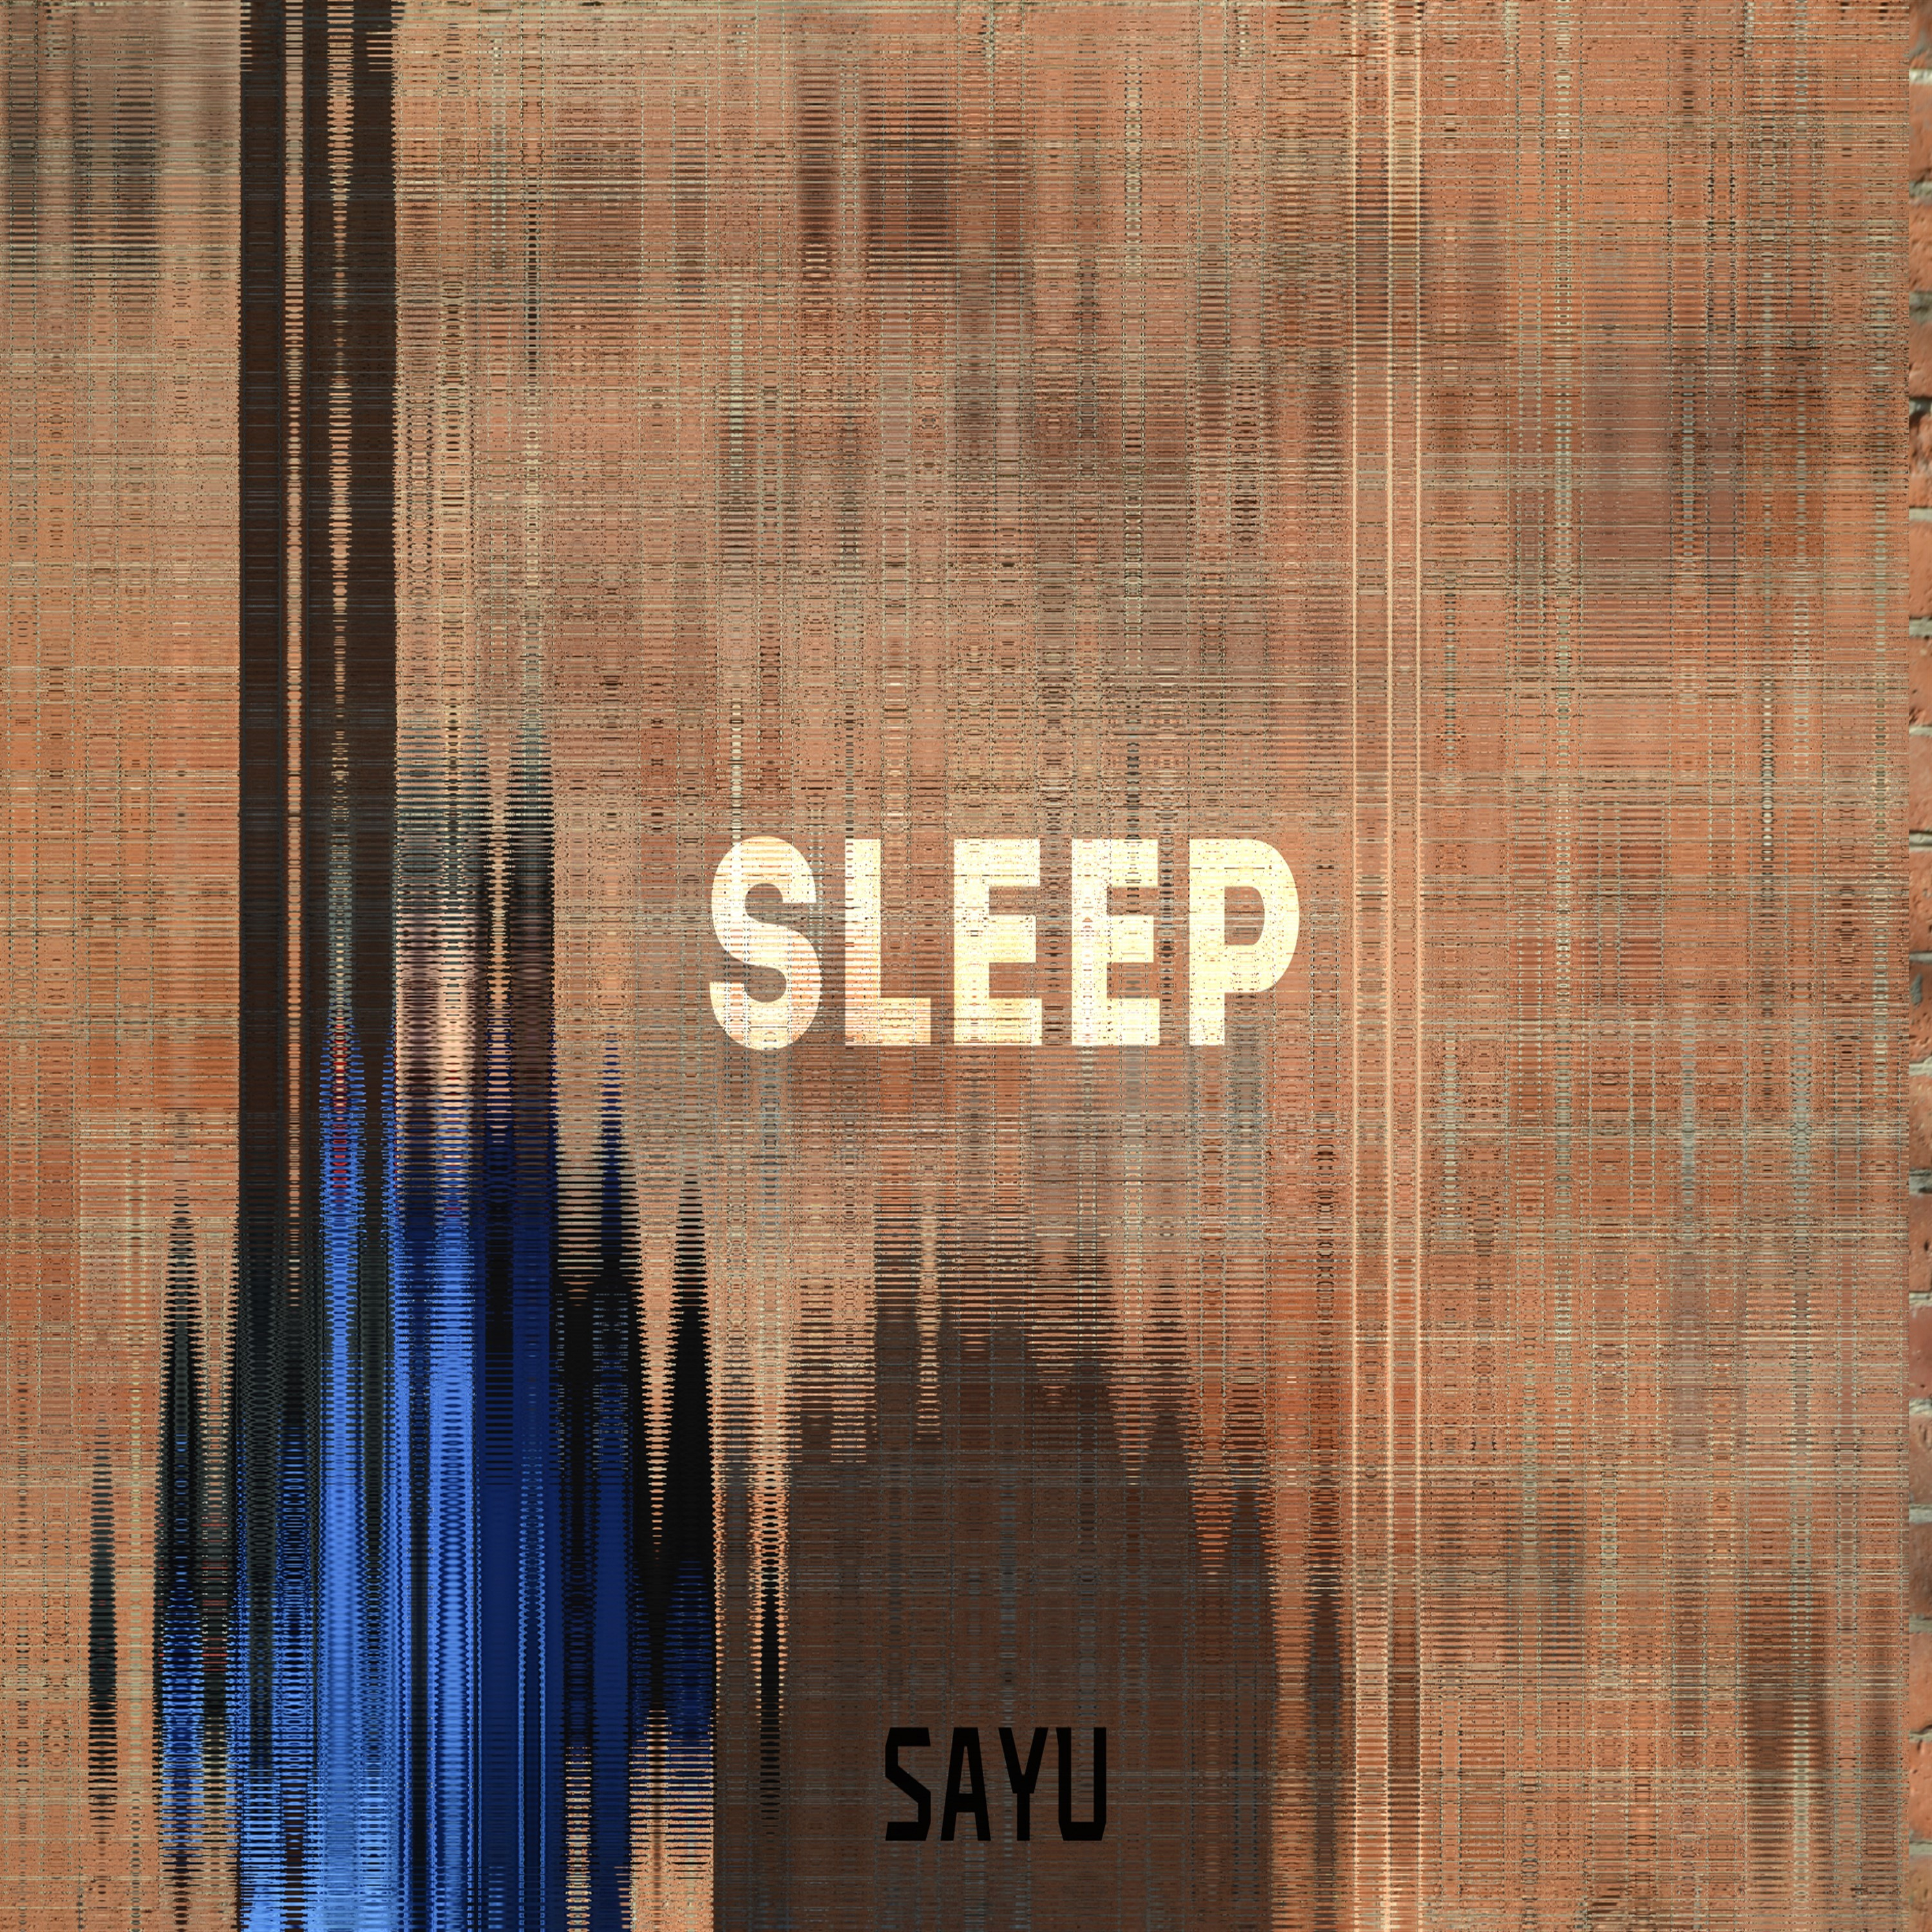 Sayu - Sleep (Original Mix)